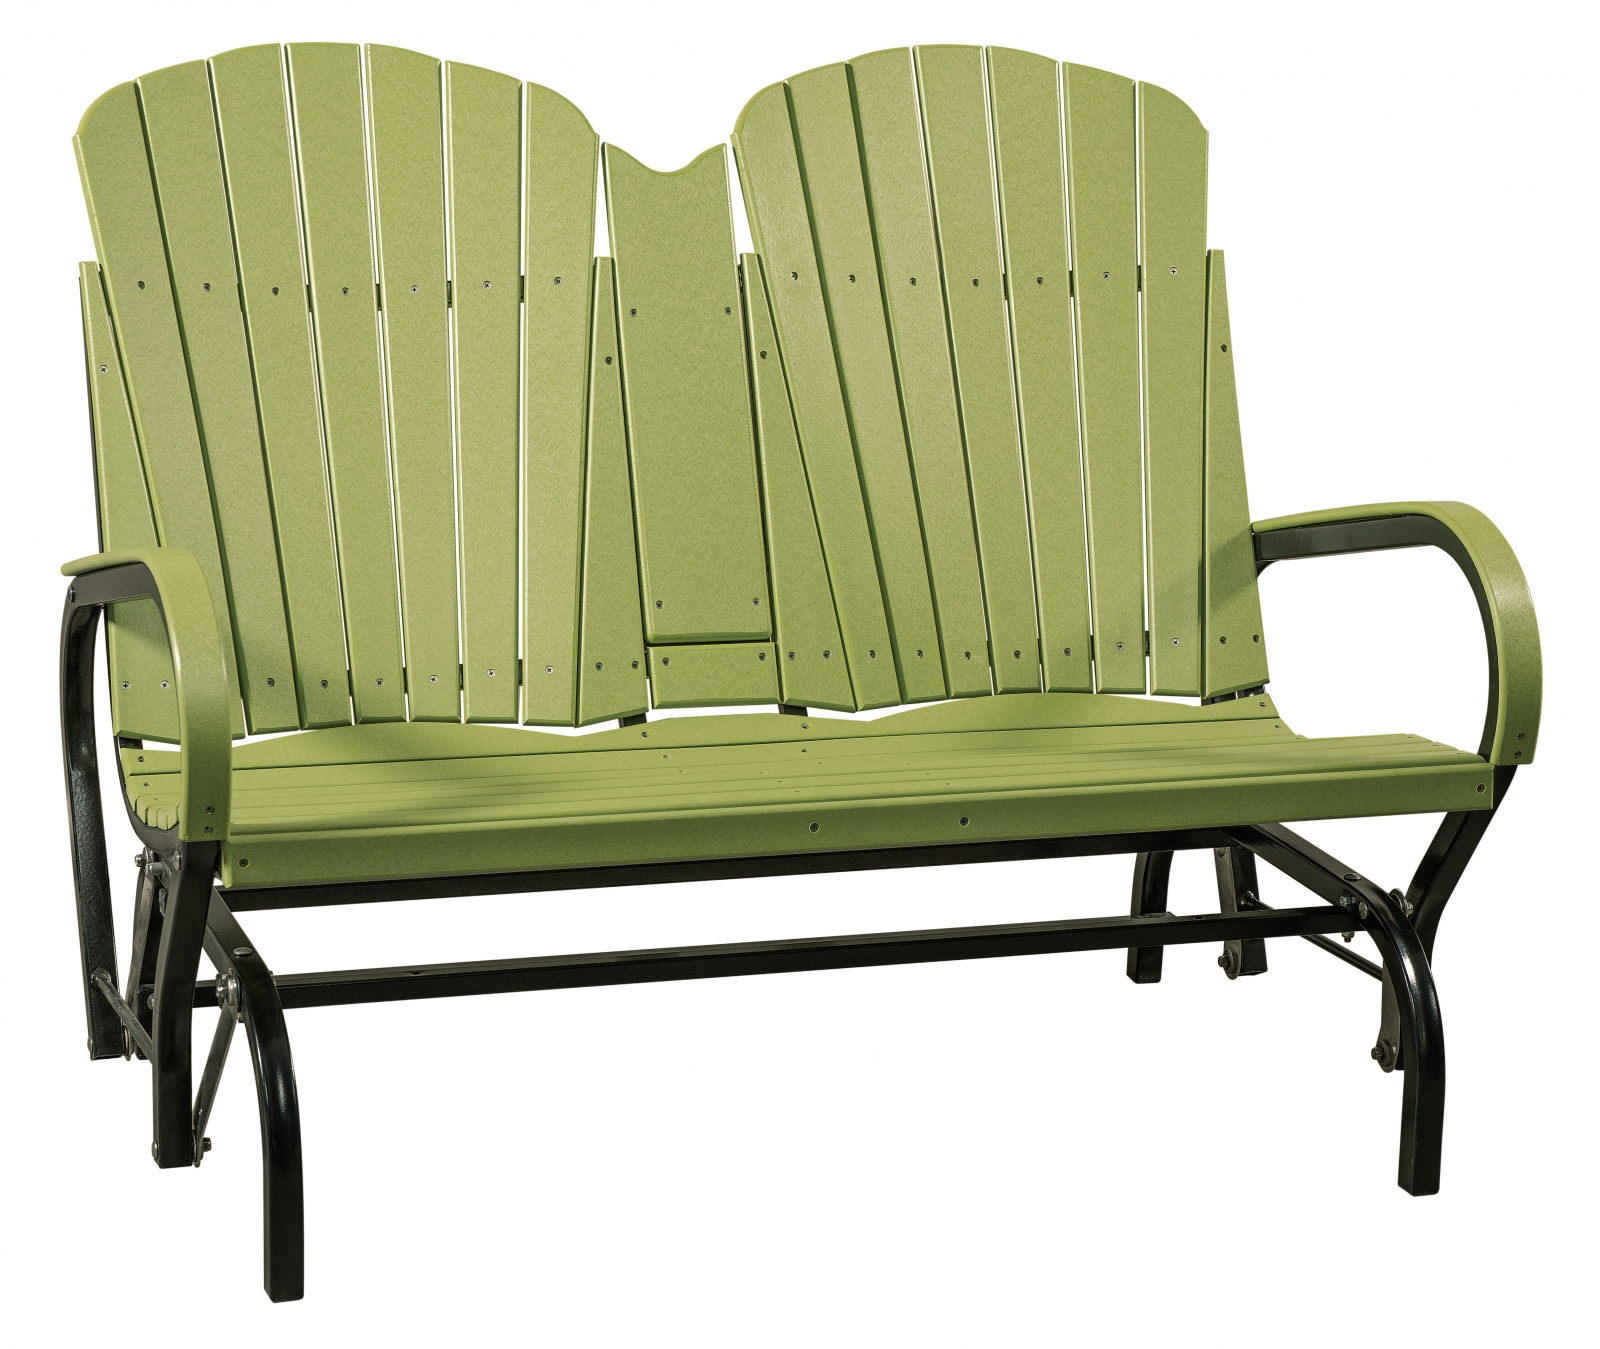 Double Seat Fan Back Glider — Everything Amish Intended For Fanback Glider Benches (View 14 of 25)